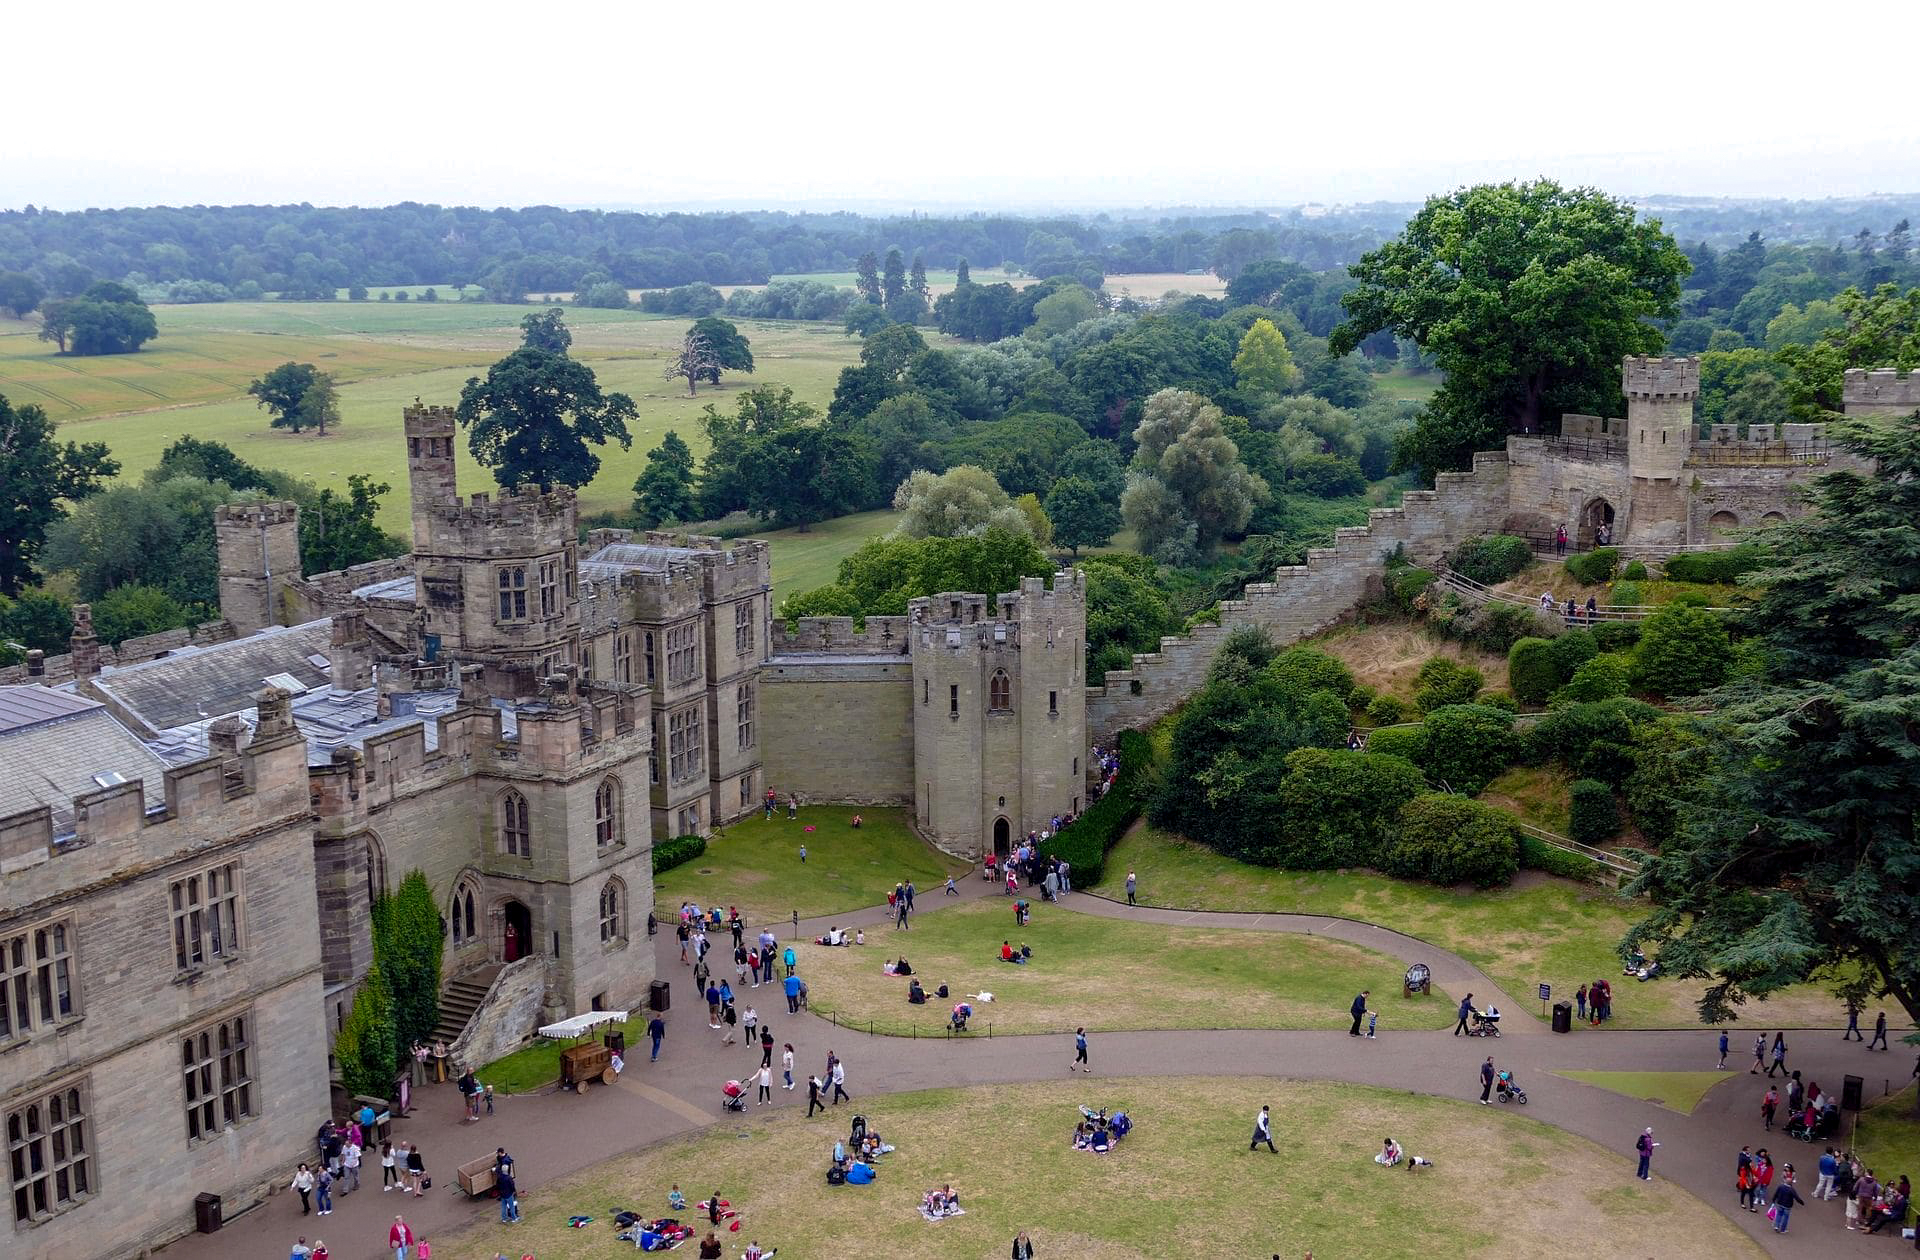 warwick-castle-in-england-uk-tourists-at-historic-attraction-in-castle-gardens